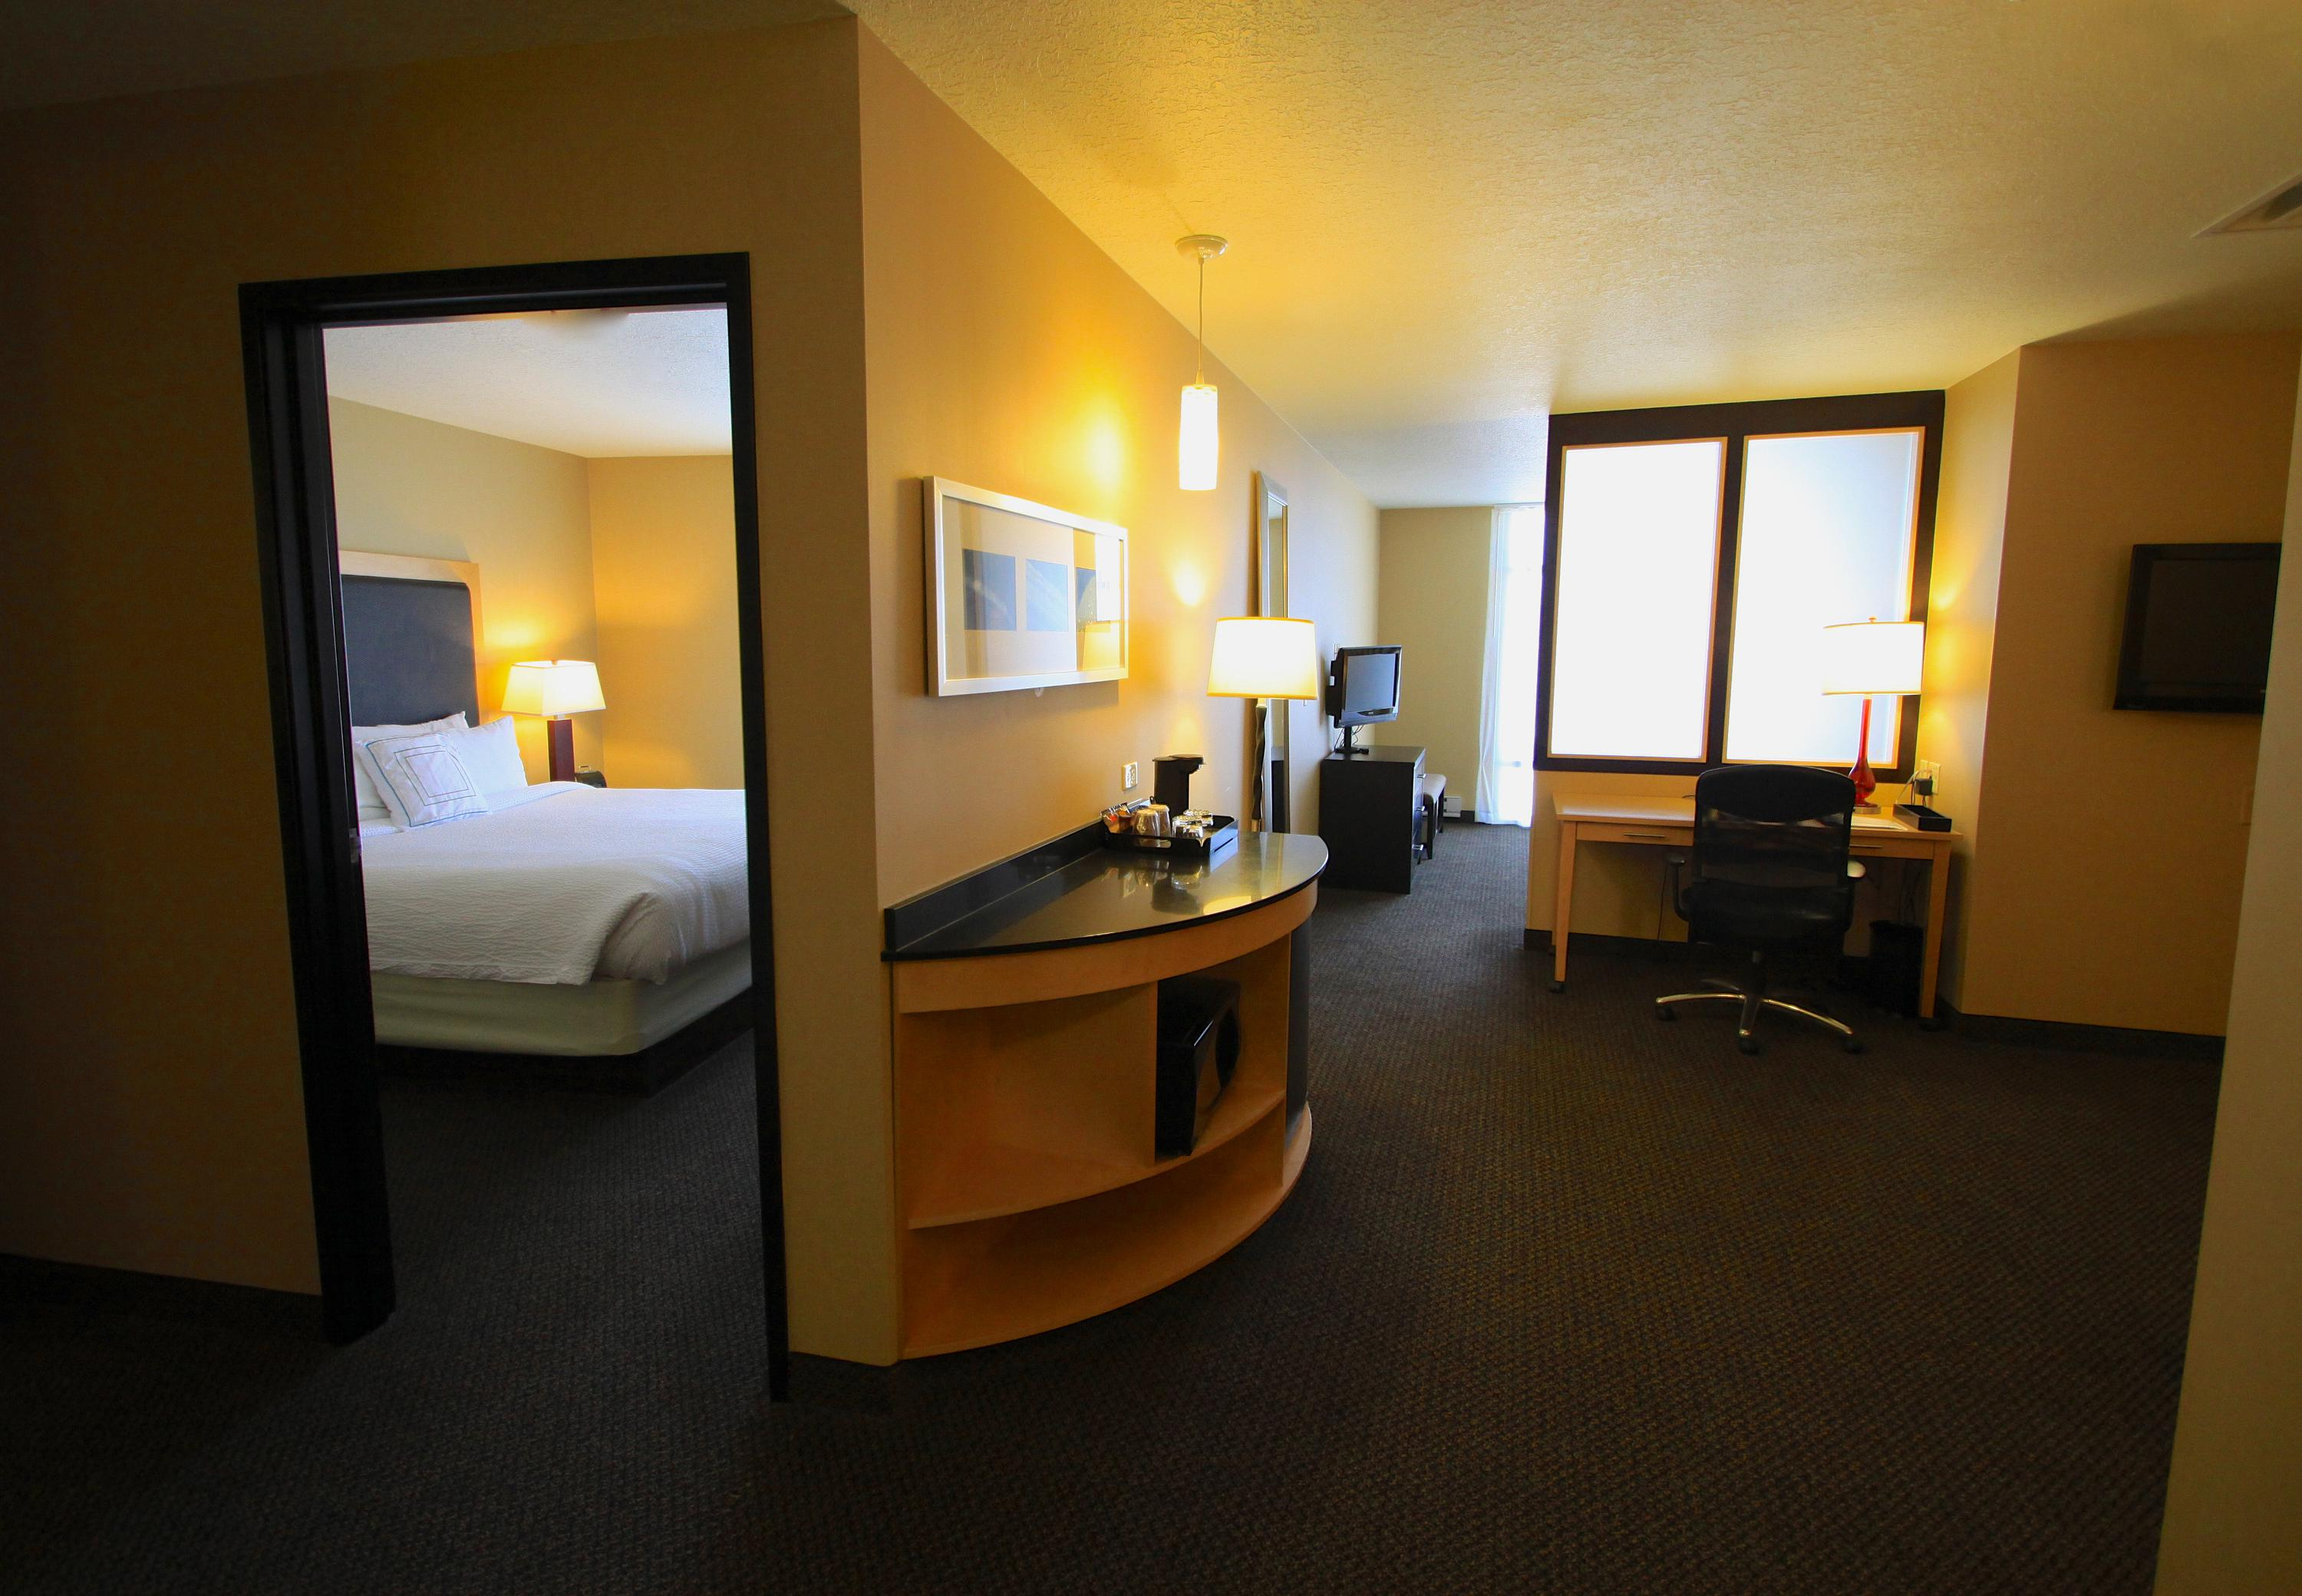 SpringHill Suites by Marriott Green Bay image 0